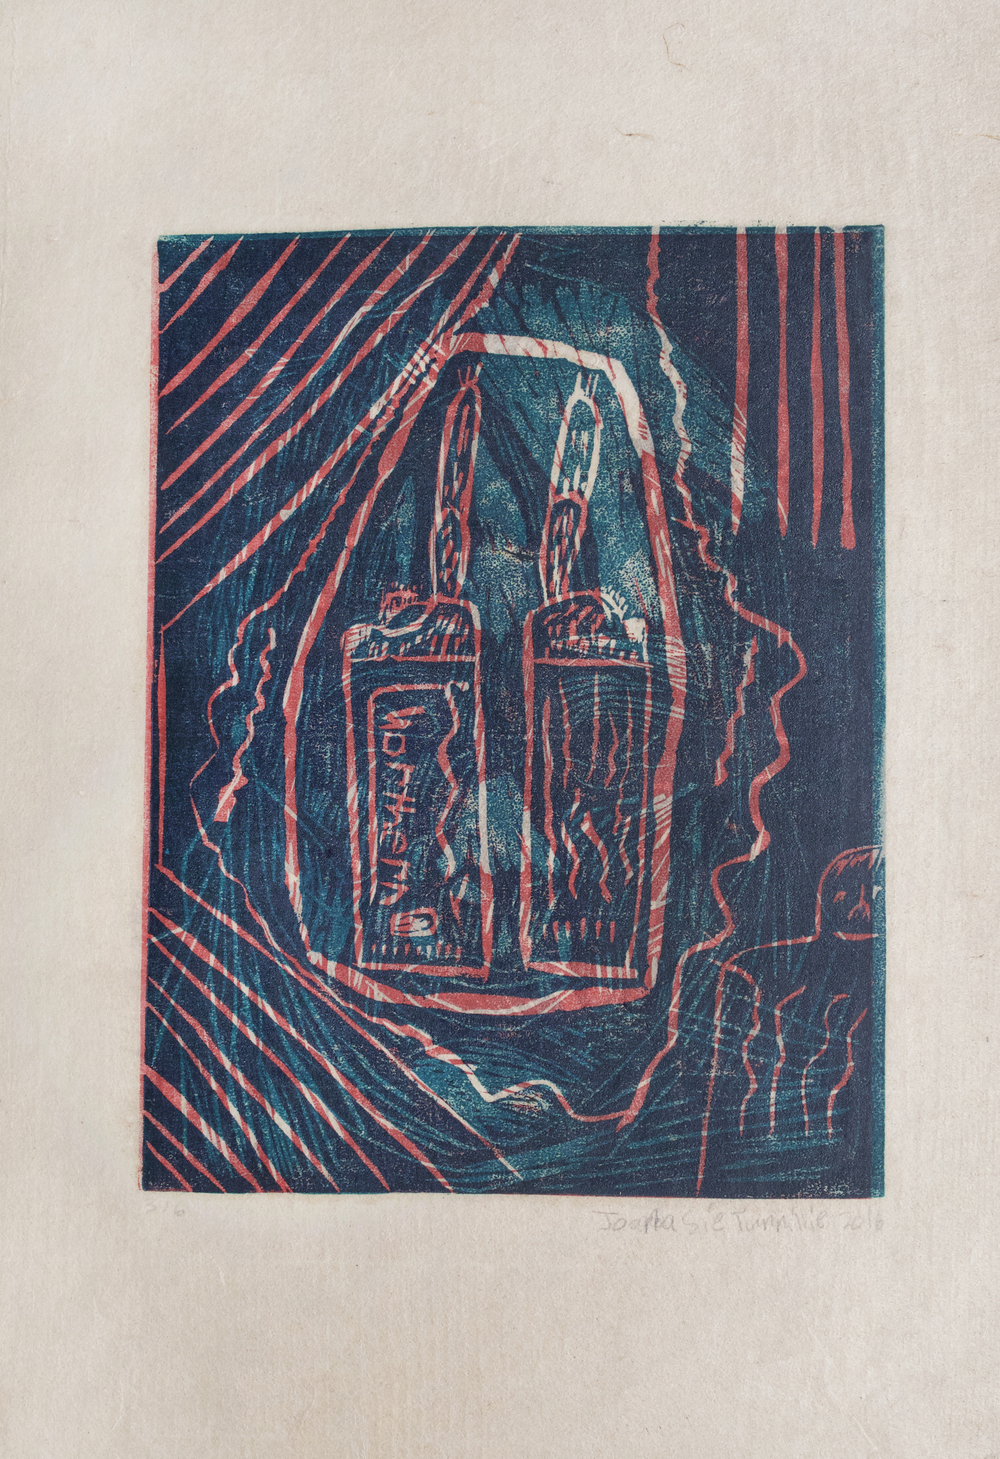 Lighters   Joanasie Tunnillie  Two-Layer Linocut Print on Washi  15.5 x 21.5""